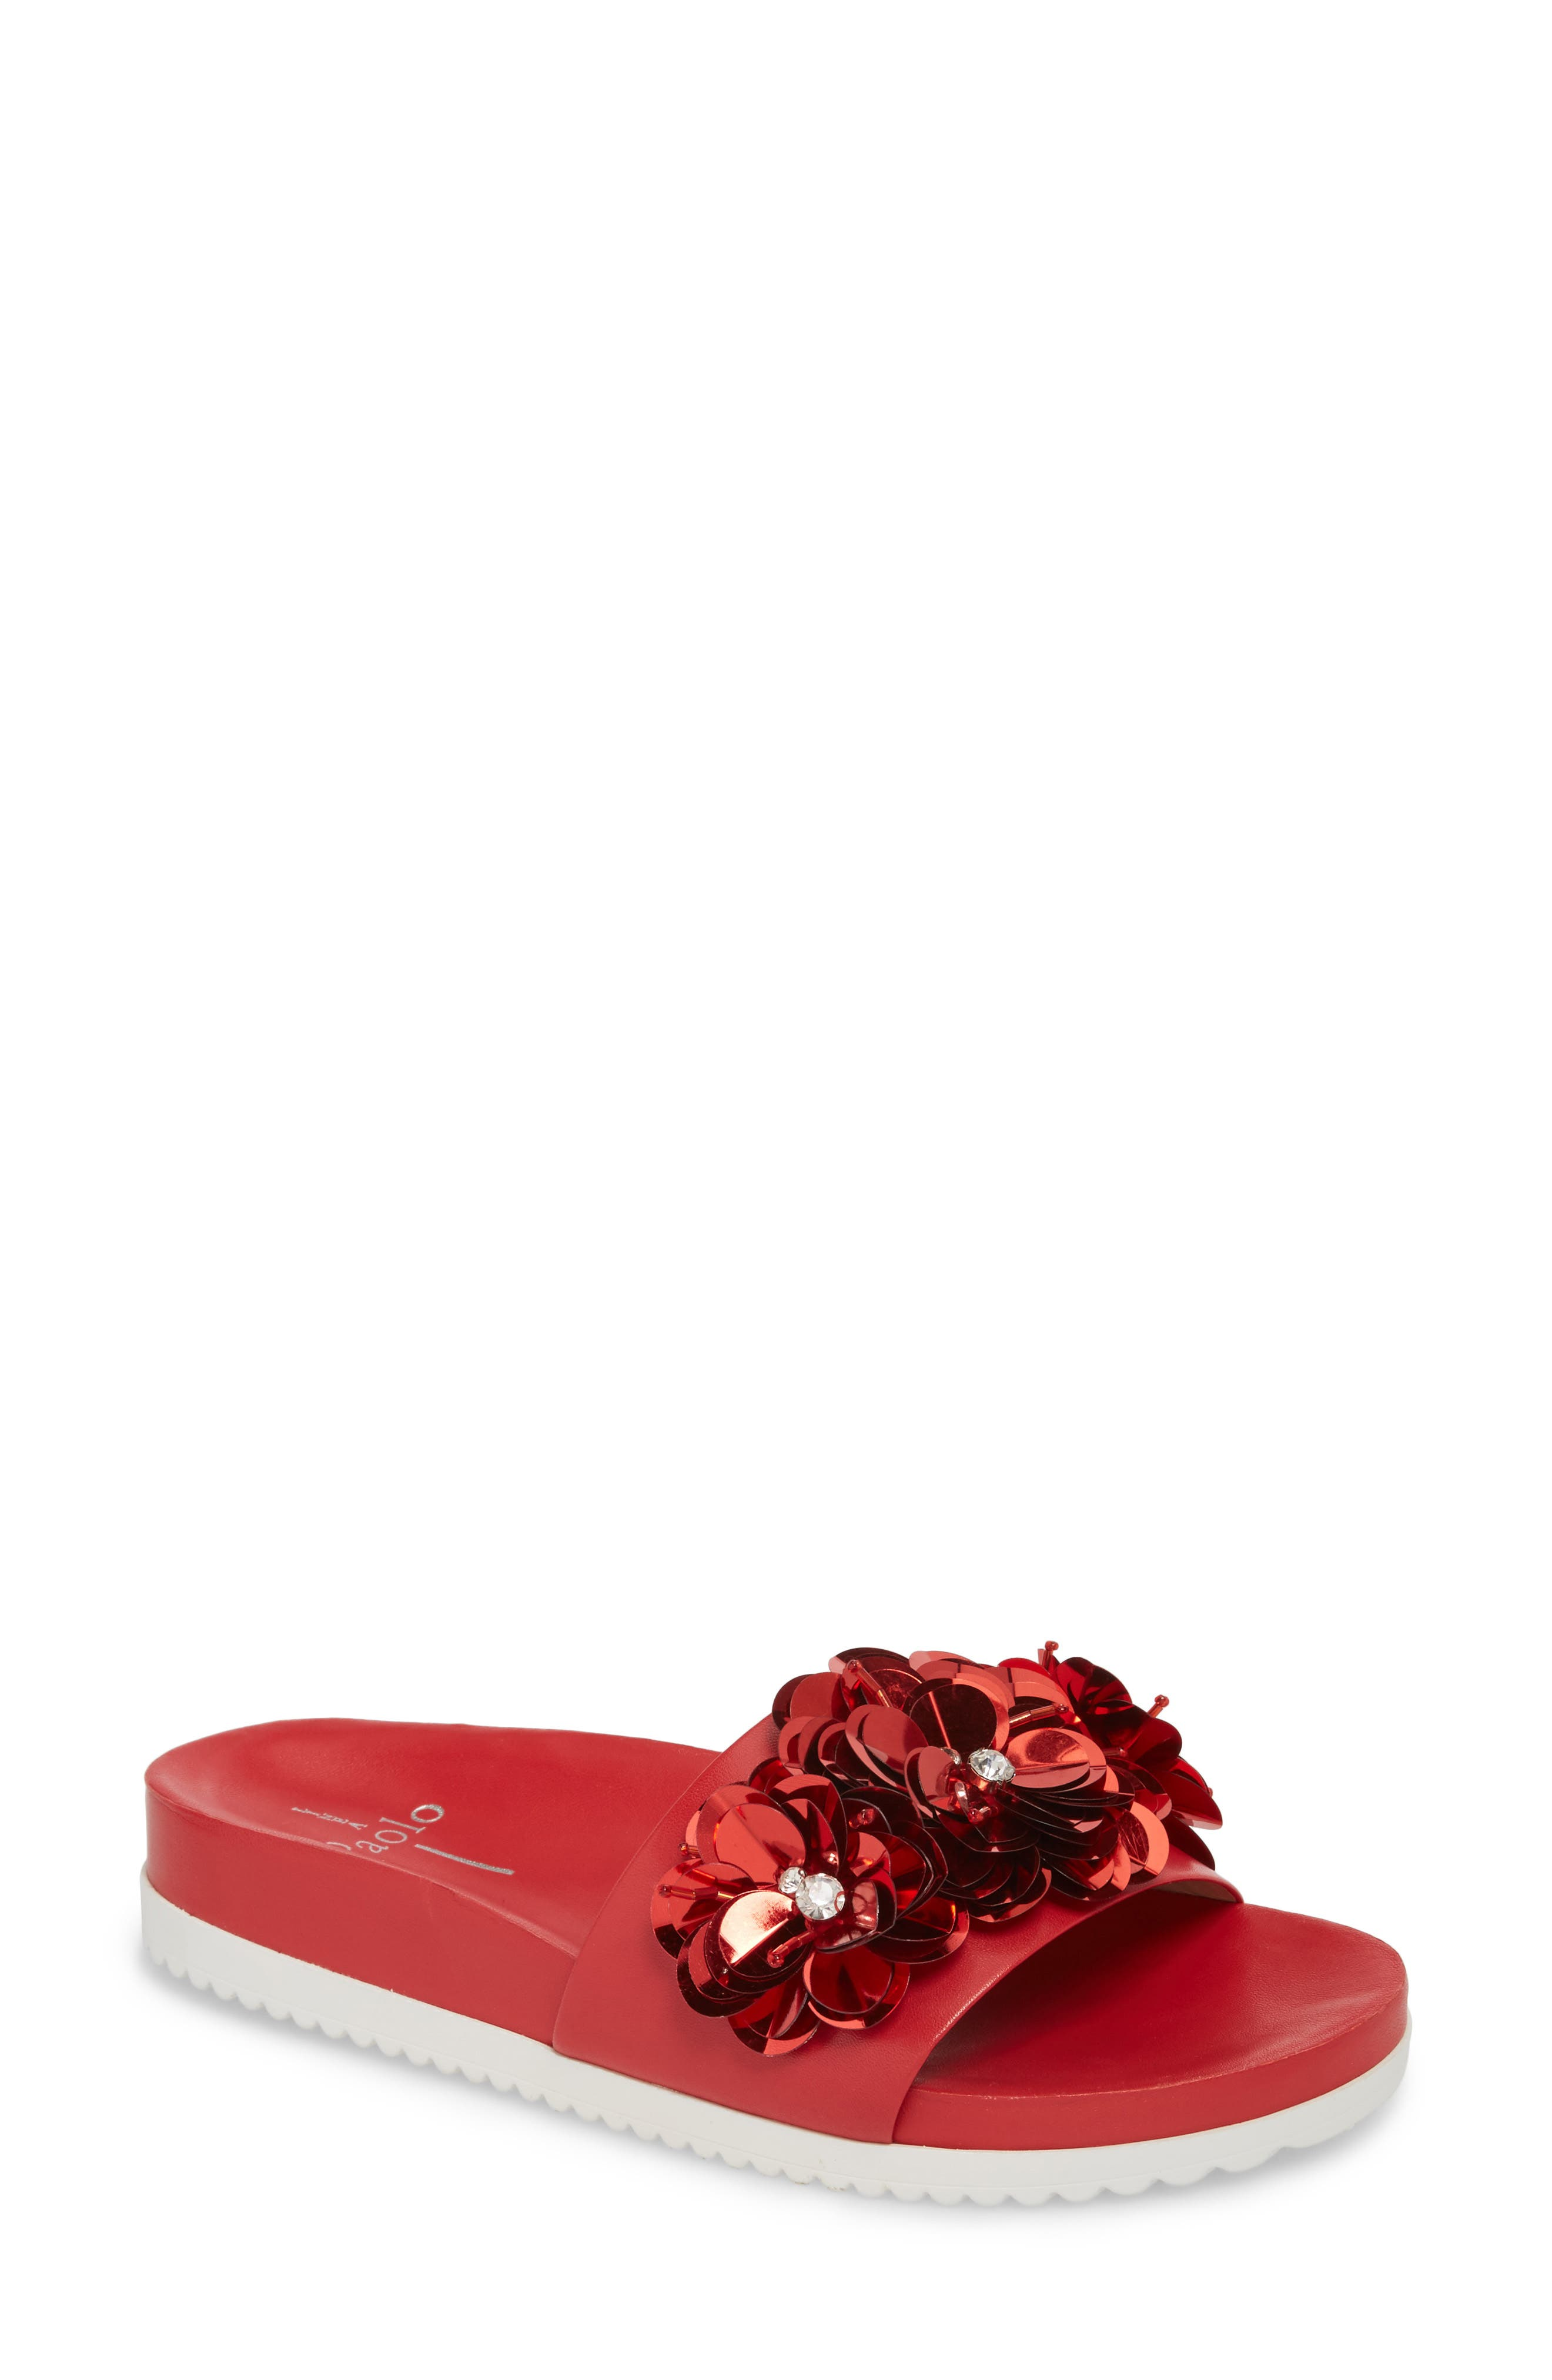 Lotus Embellished Flower Sandal Slide,                         Main,                         color, Red Fabric